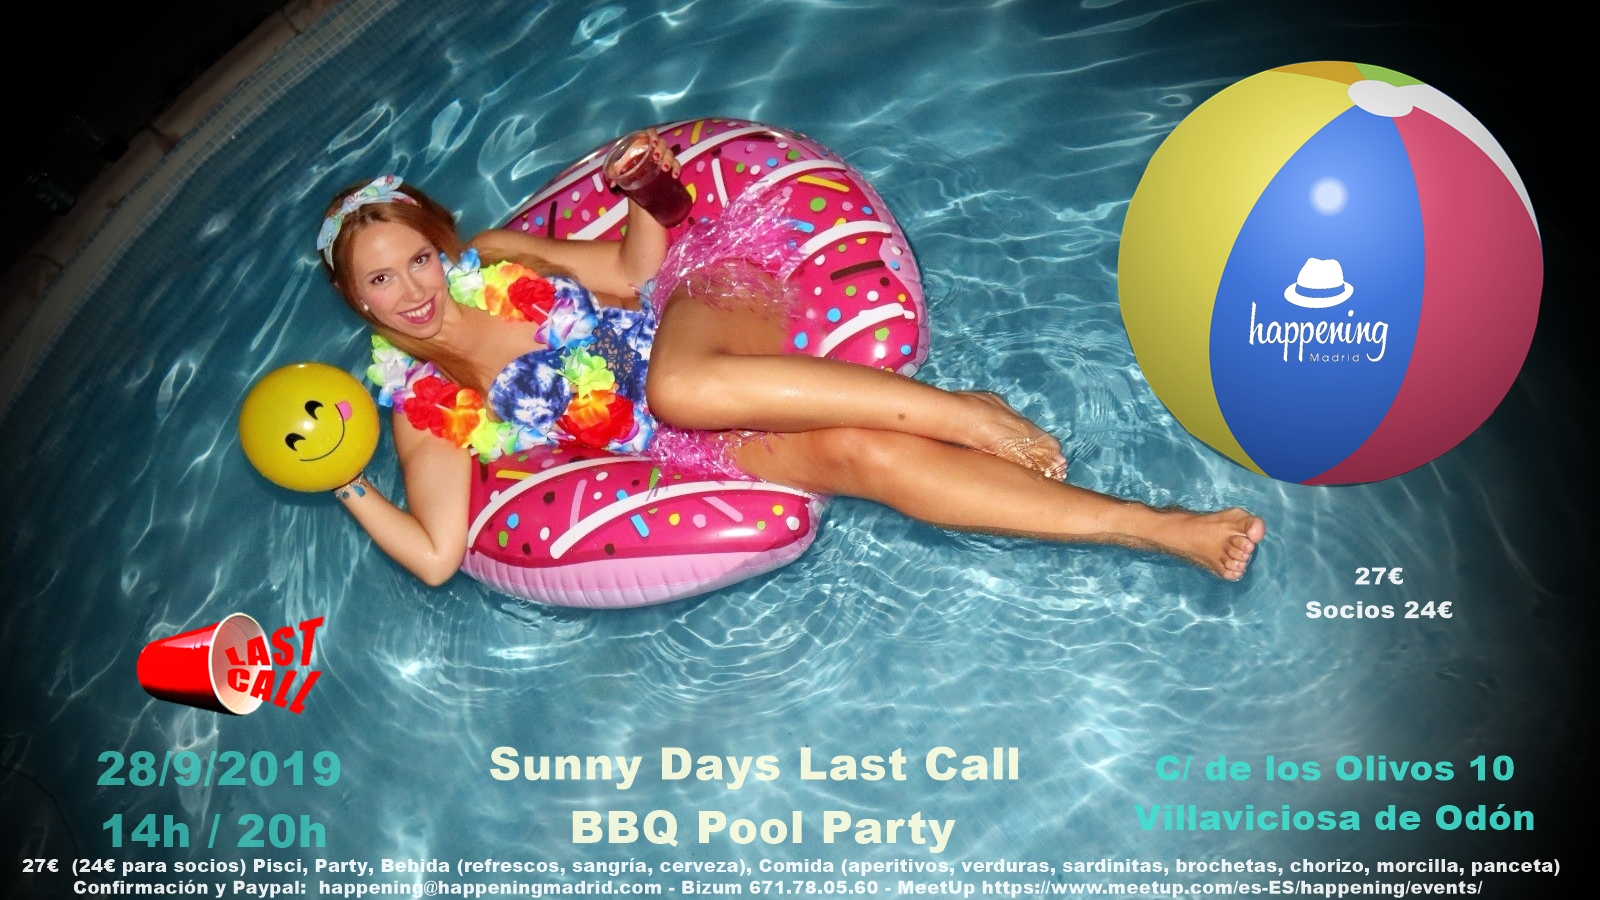 Happening BBQ Pool Party